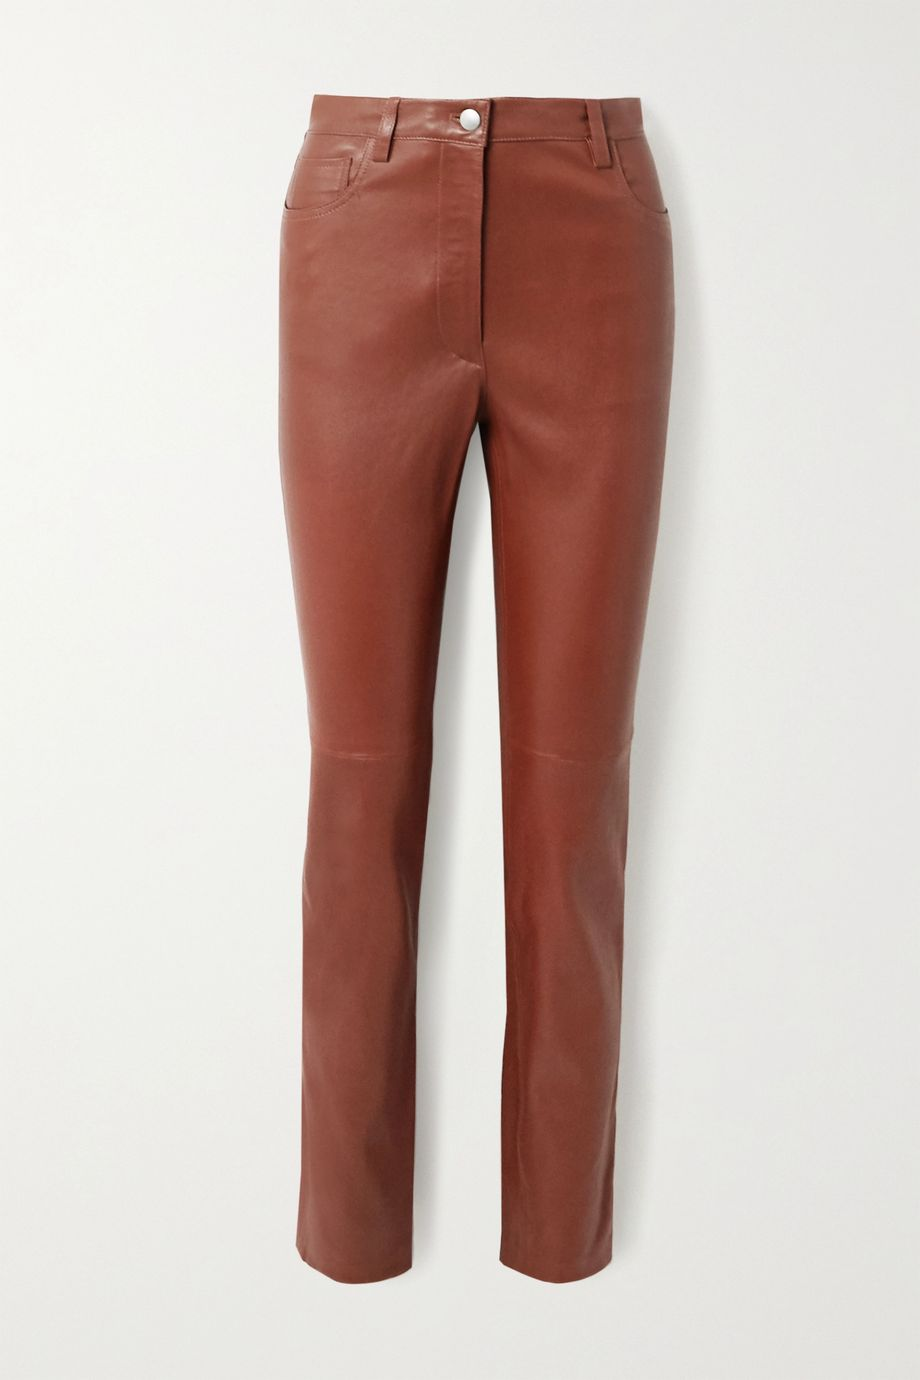 Joseph Cindy leather slim-leg pants